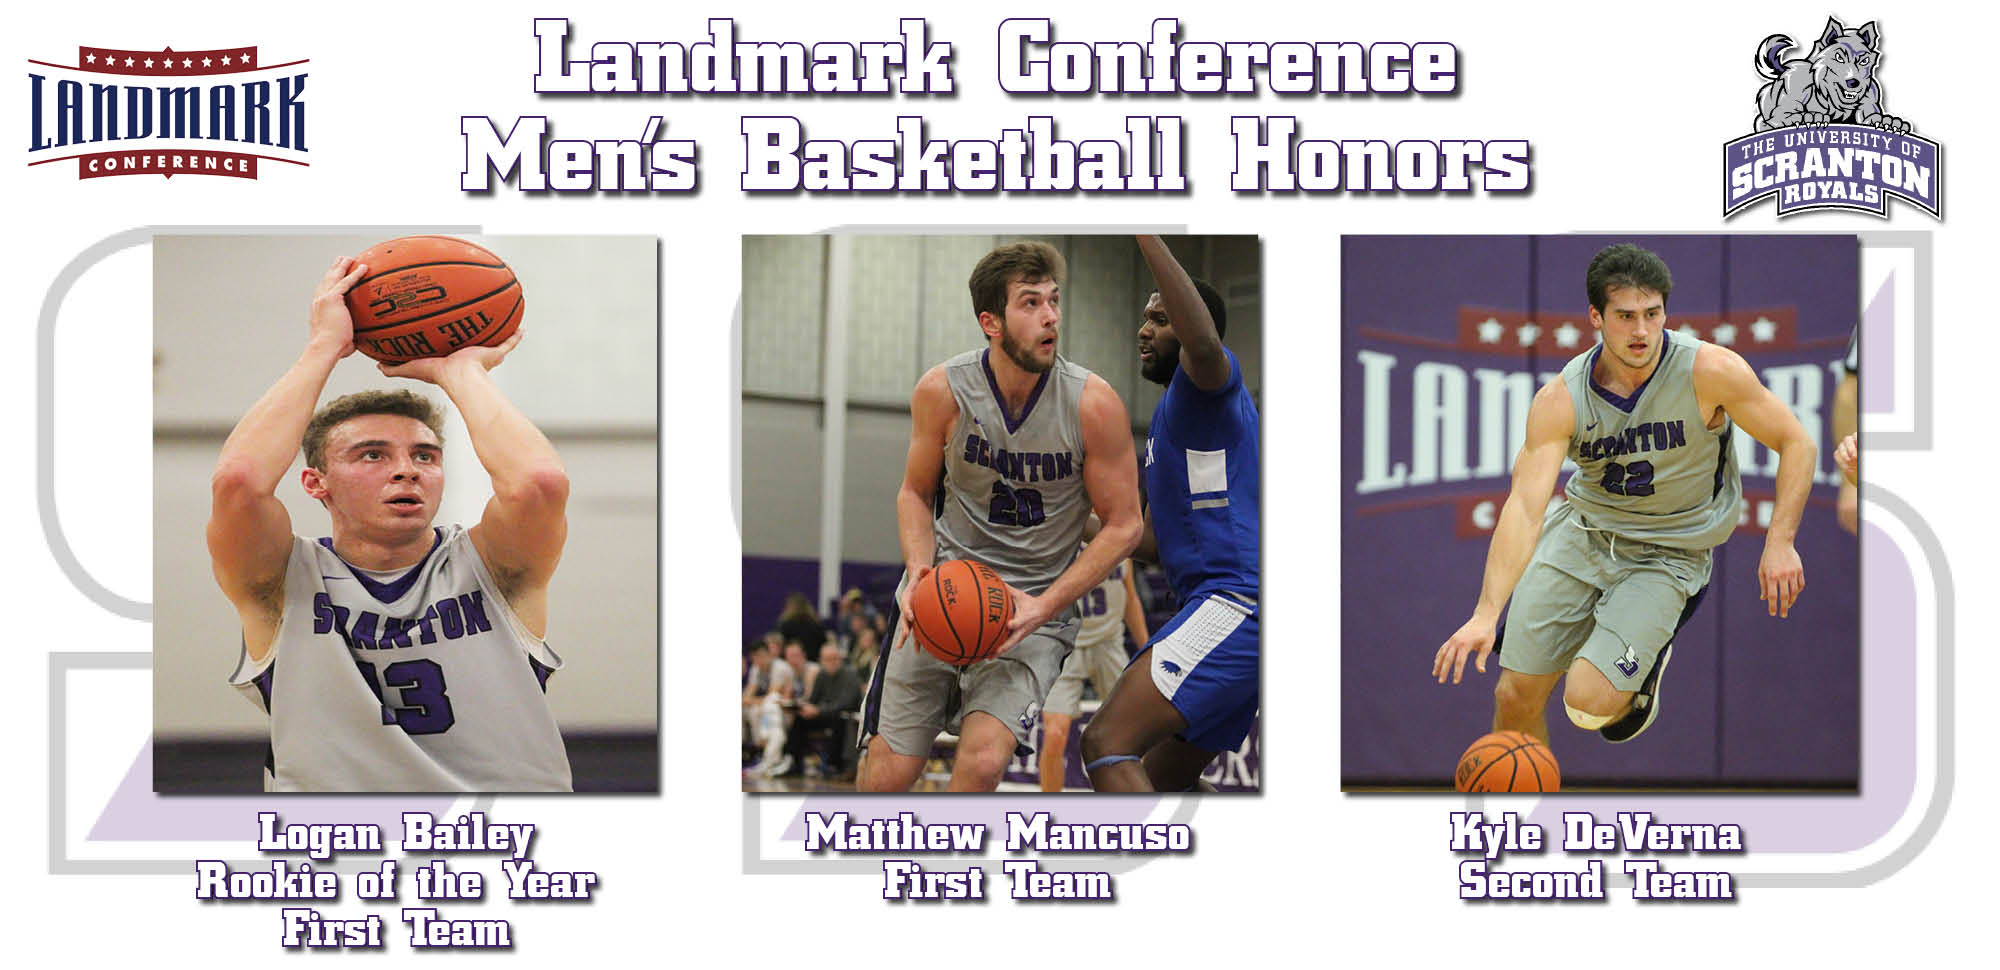 Trio of Men's Basketball Players Earn Year-End Landmark Conference Awards